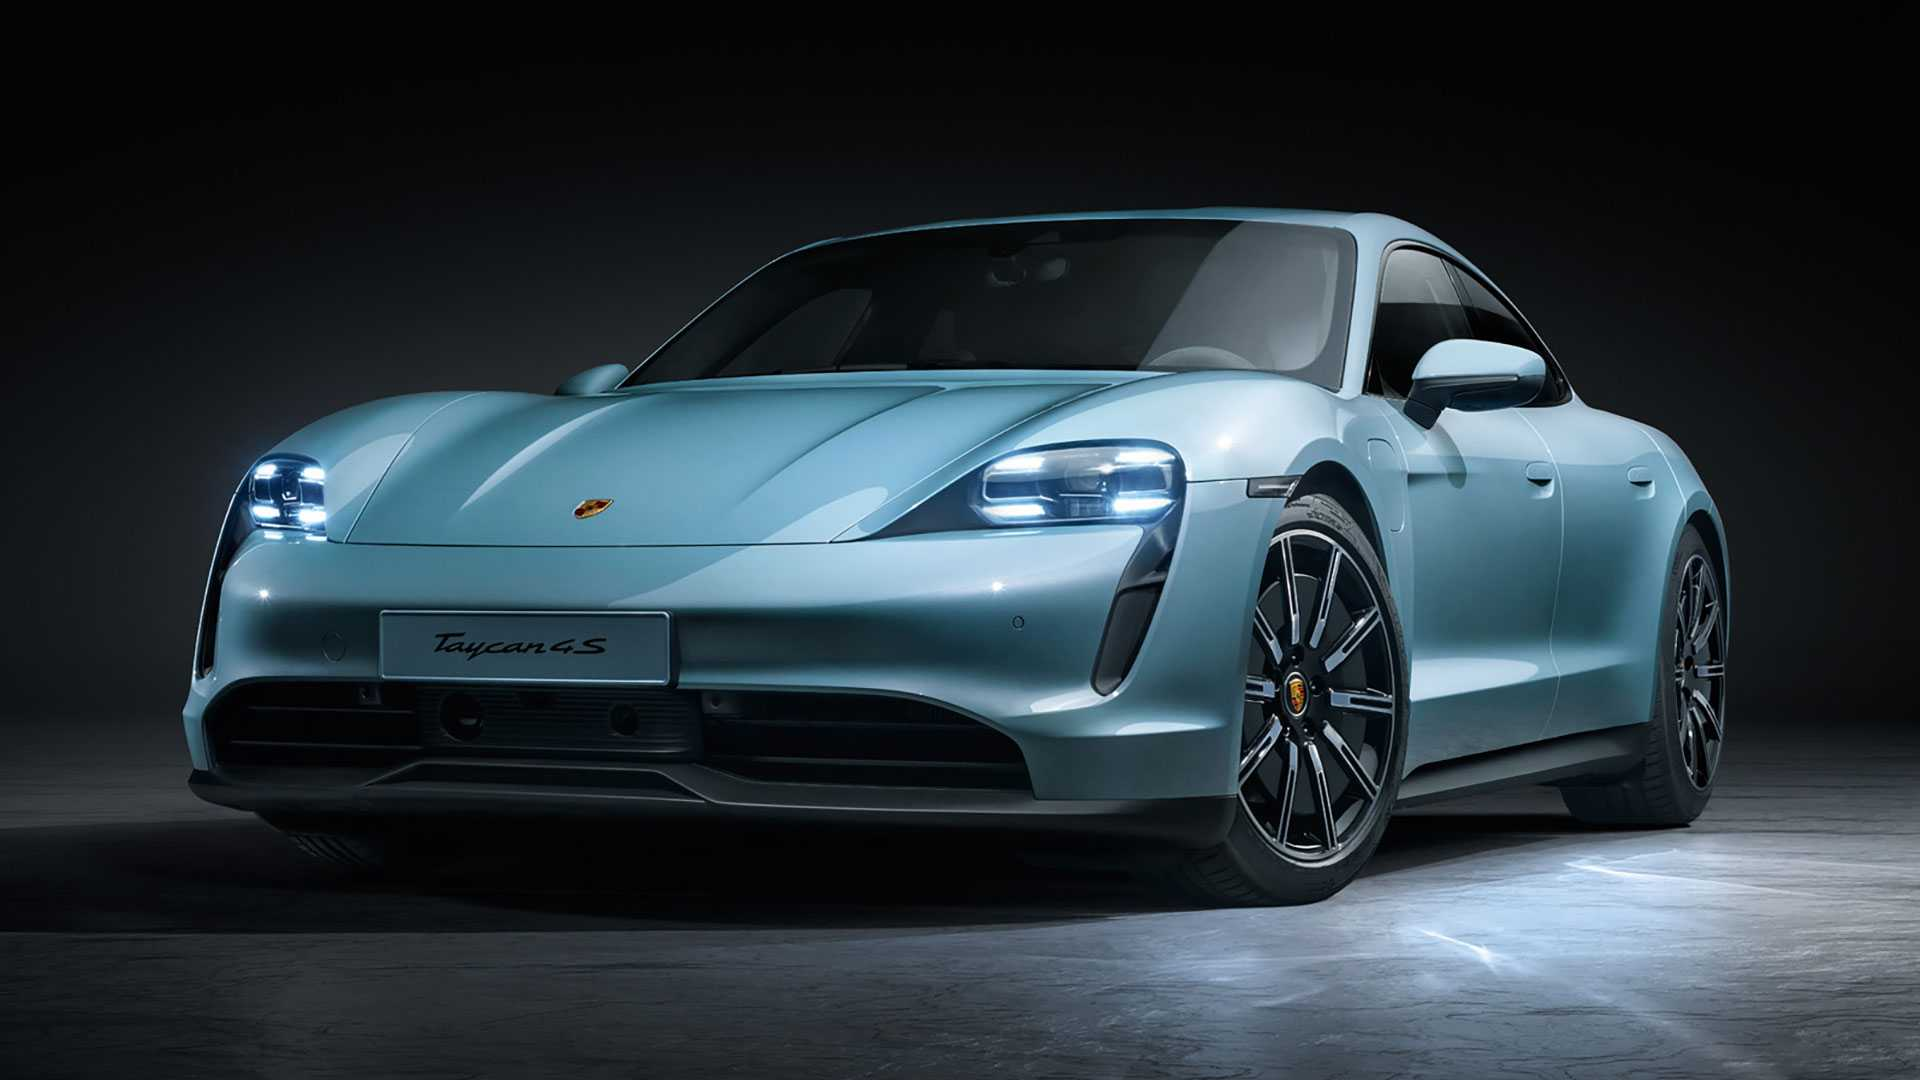 2020 Porsche Taycan 4S revealed with two battery options, lower price